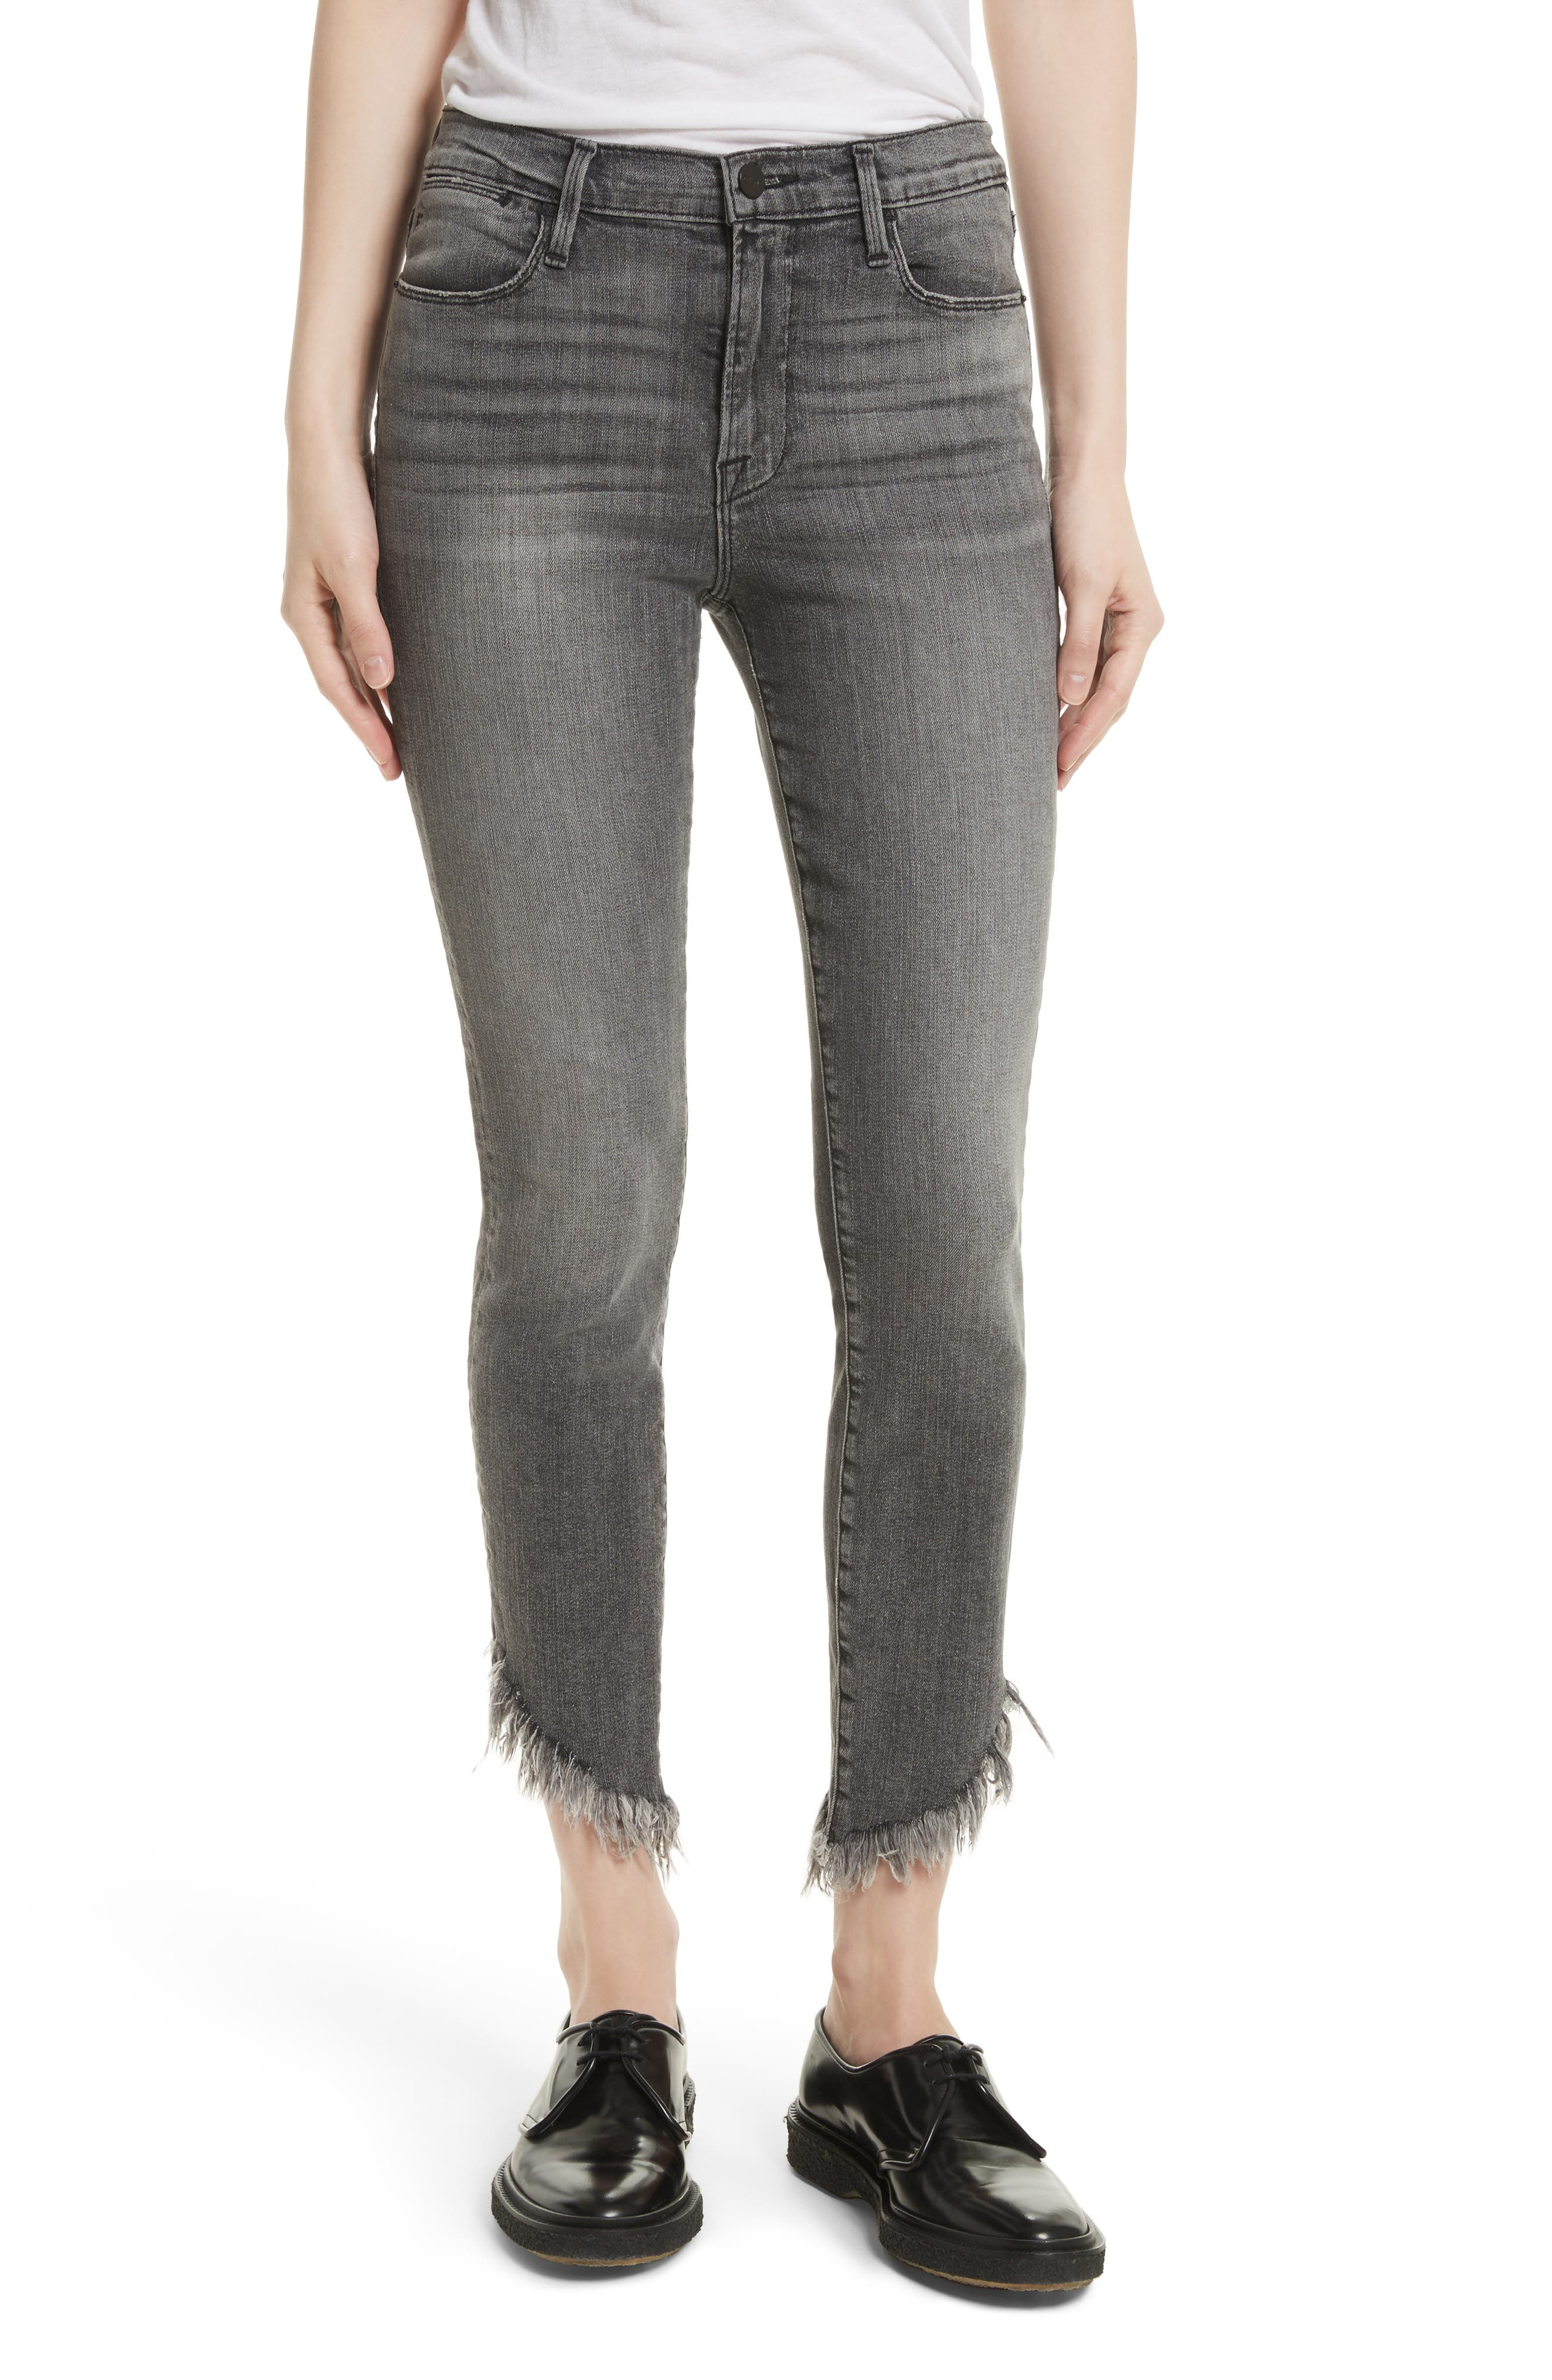 Alternate Image 1 Selected - FRAME Le High Shredded Skinny Jeans (Berwick)